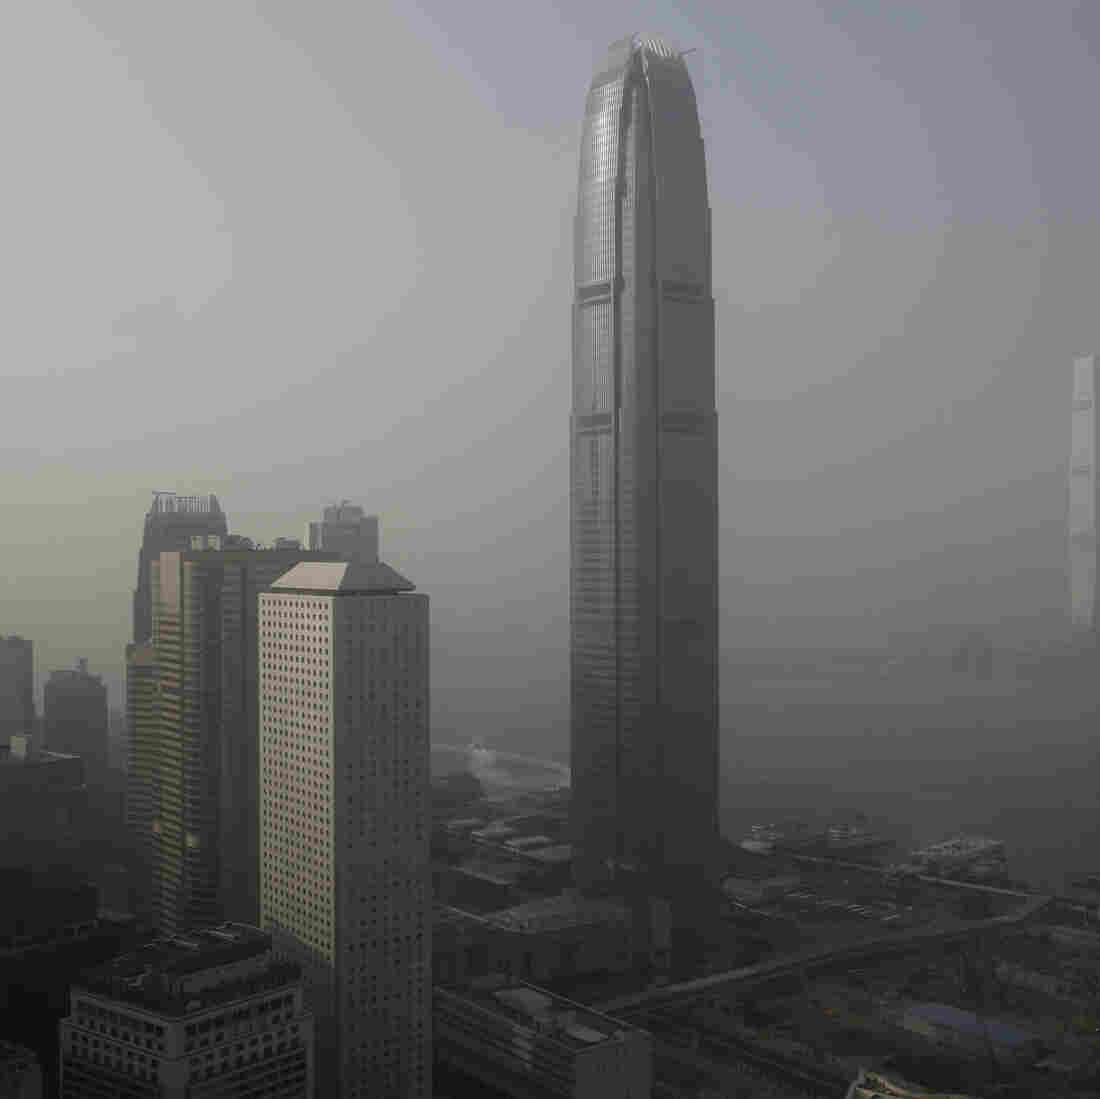 Years of rapid industrial expansion have left many parts of China contending with thick smog and dirty water.